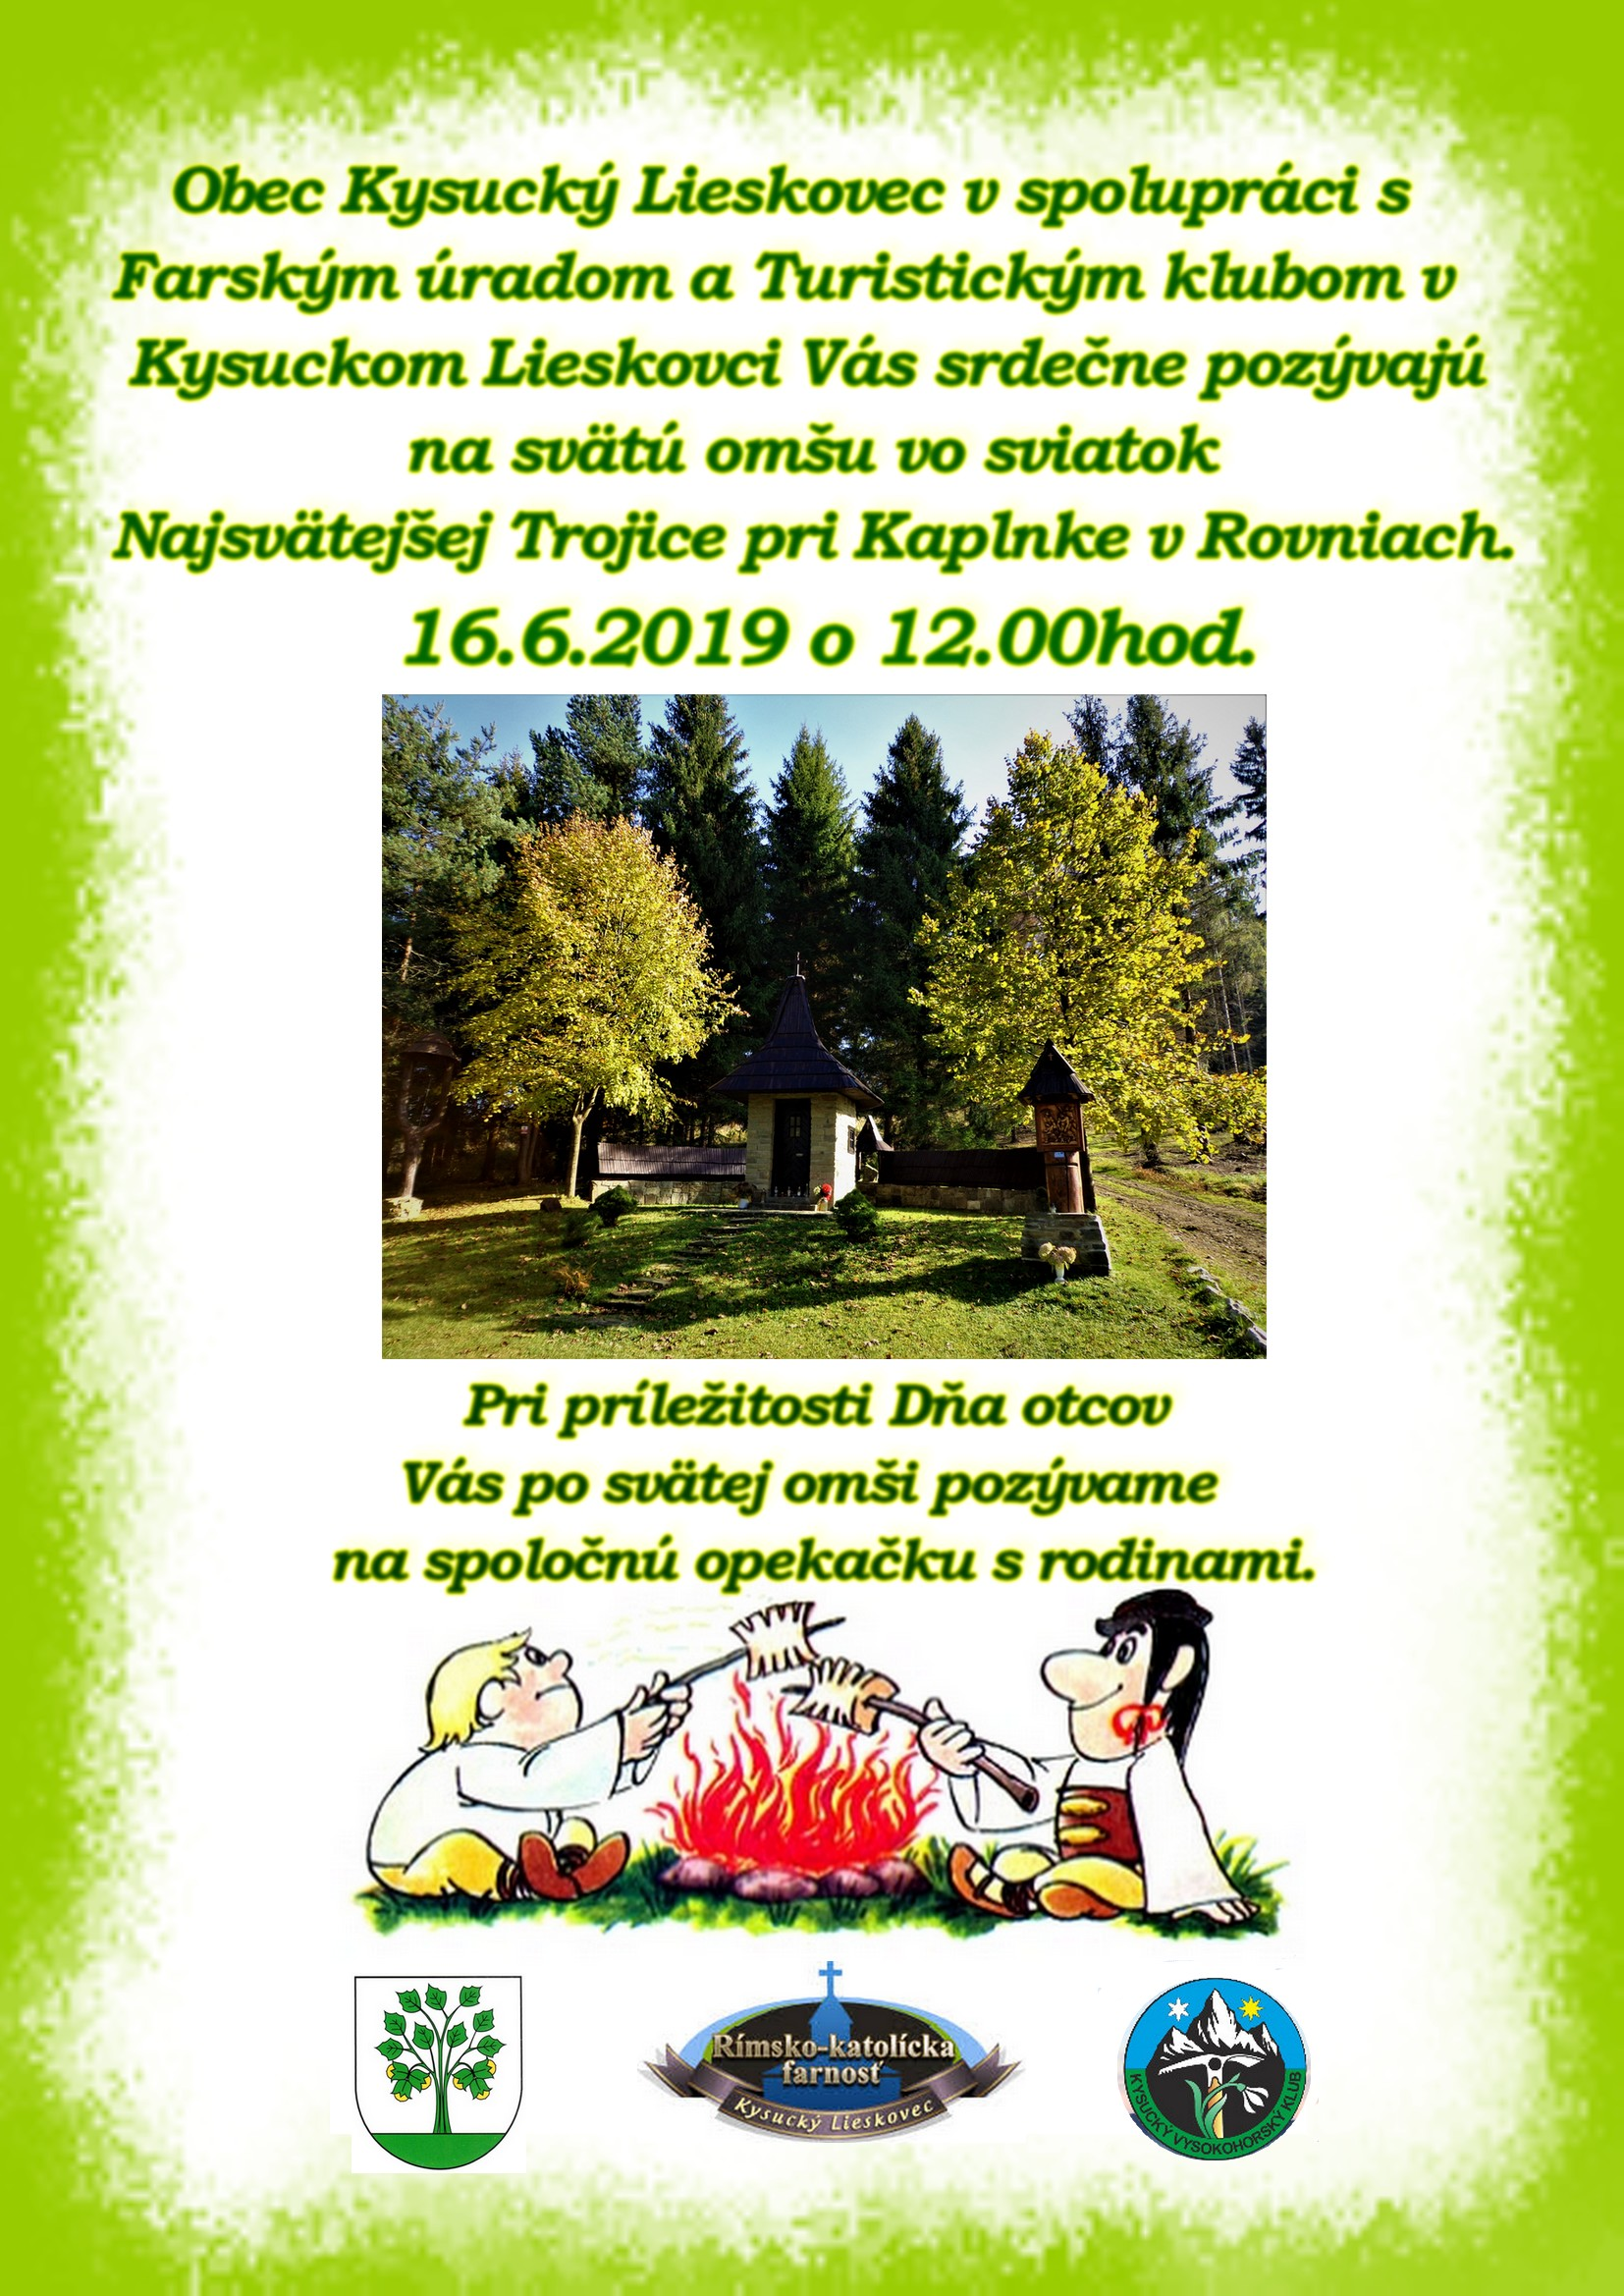 The village of Kysucky Lieskovec in cooperation with the Parish Office and the Tourist Club in Kysucky Lieskovec invite you to the Holy Mass on the Feast of the Holy Trinity at the Chapel in Rovne. June 16, 2019 at 12:00 pm